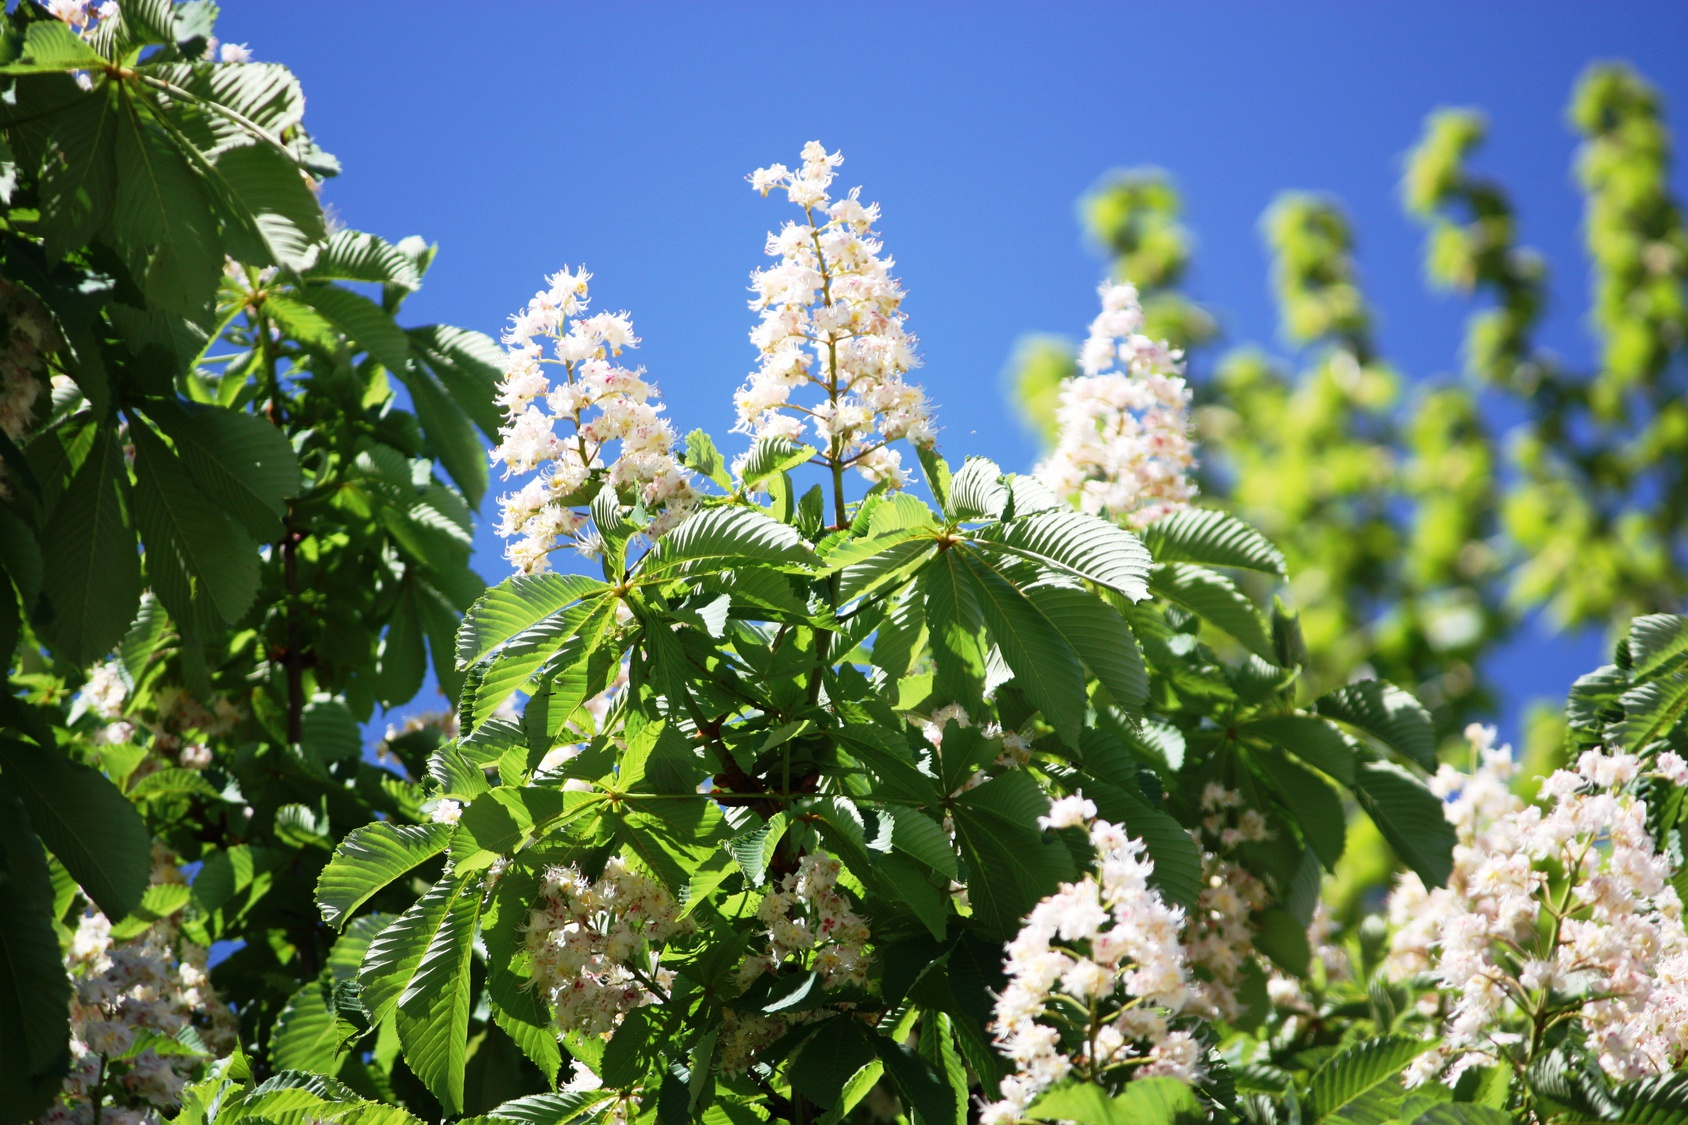 Blossoming Chestnut Tree under clear blue sky